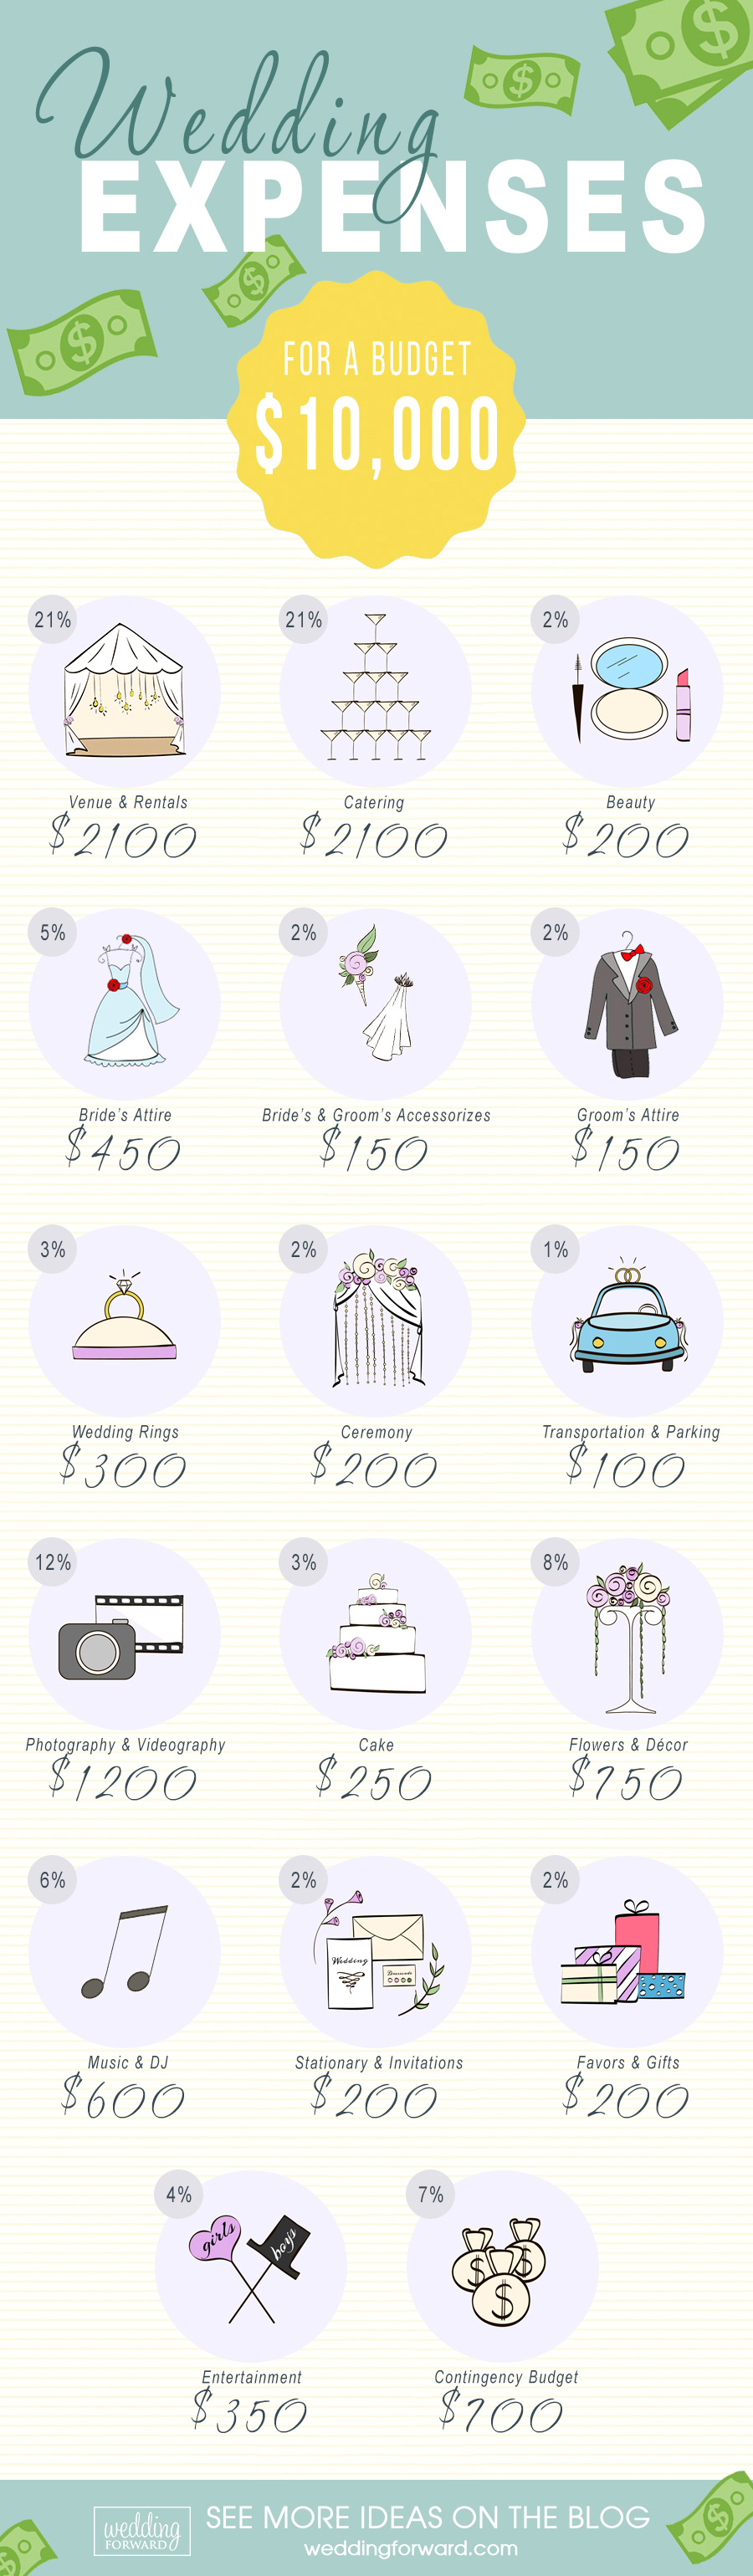 cheap-wedding-expenses-10k-infographic-plaza